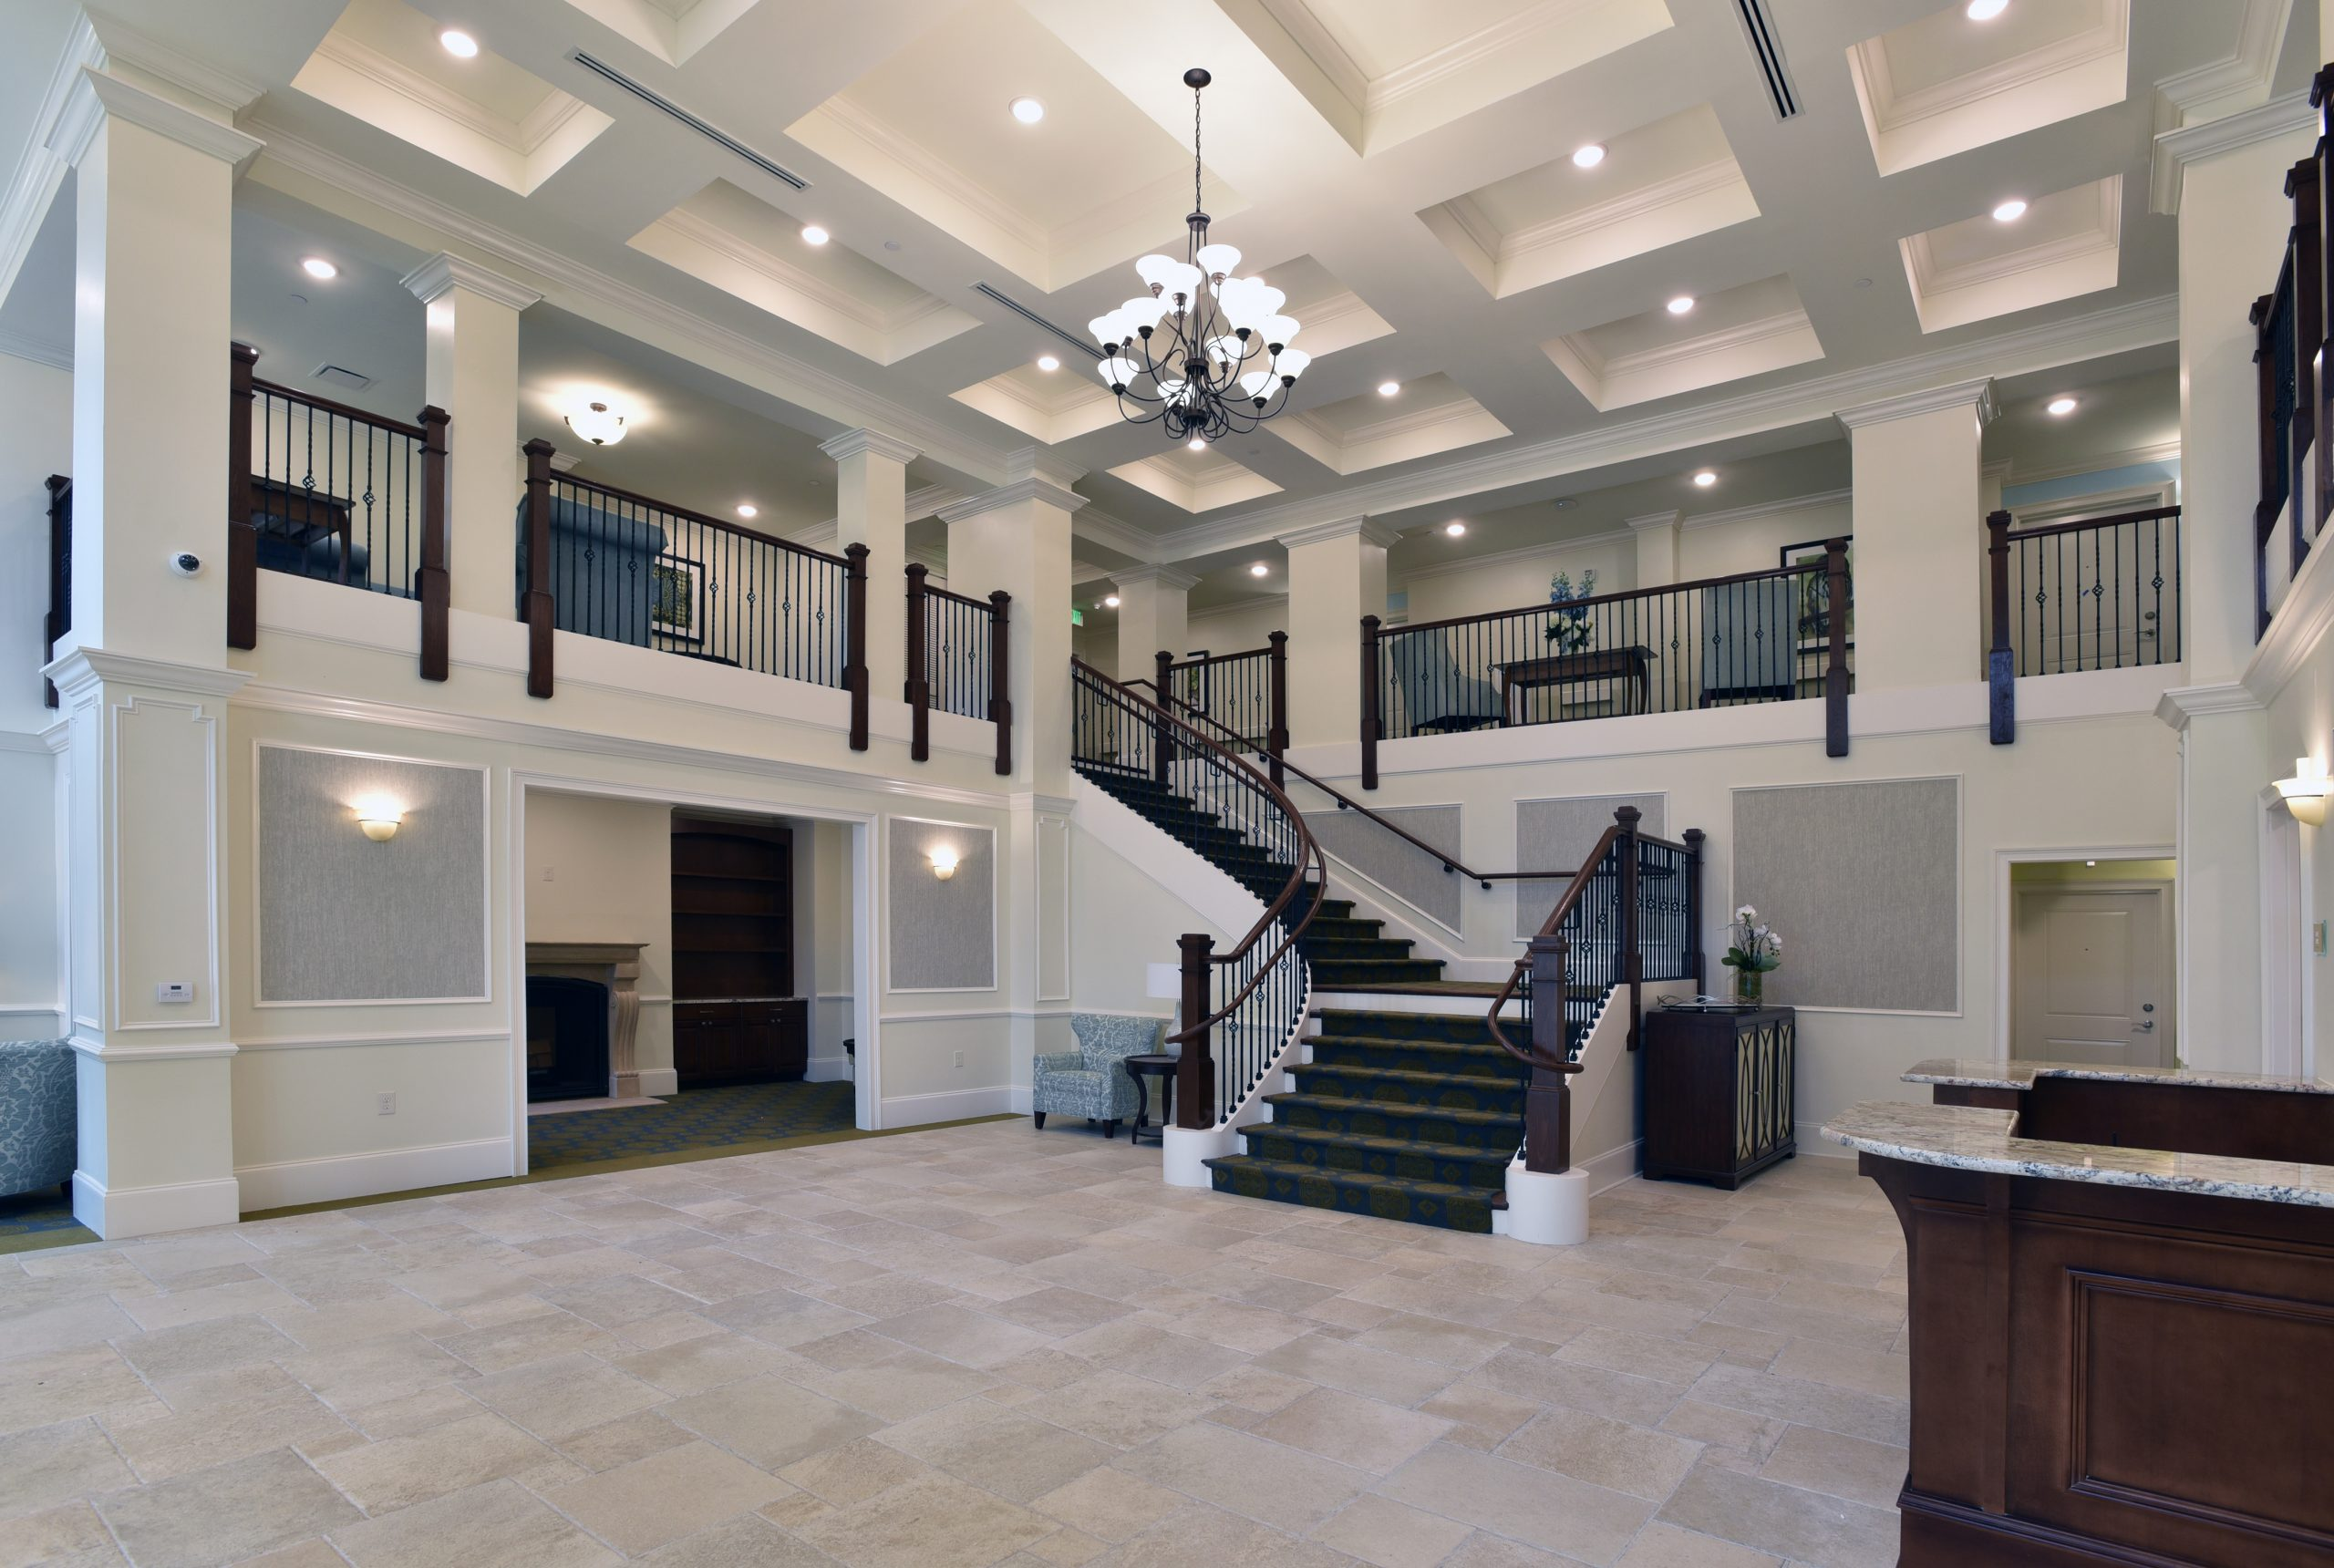 Villas at Canterfield of Kennesaw front lobby entrance